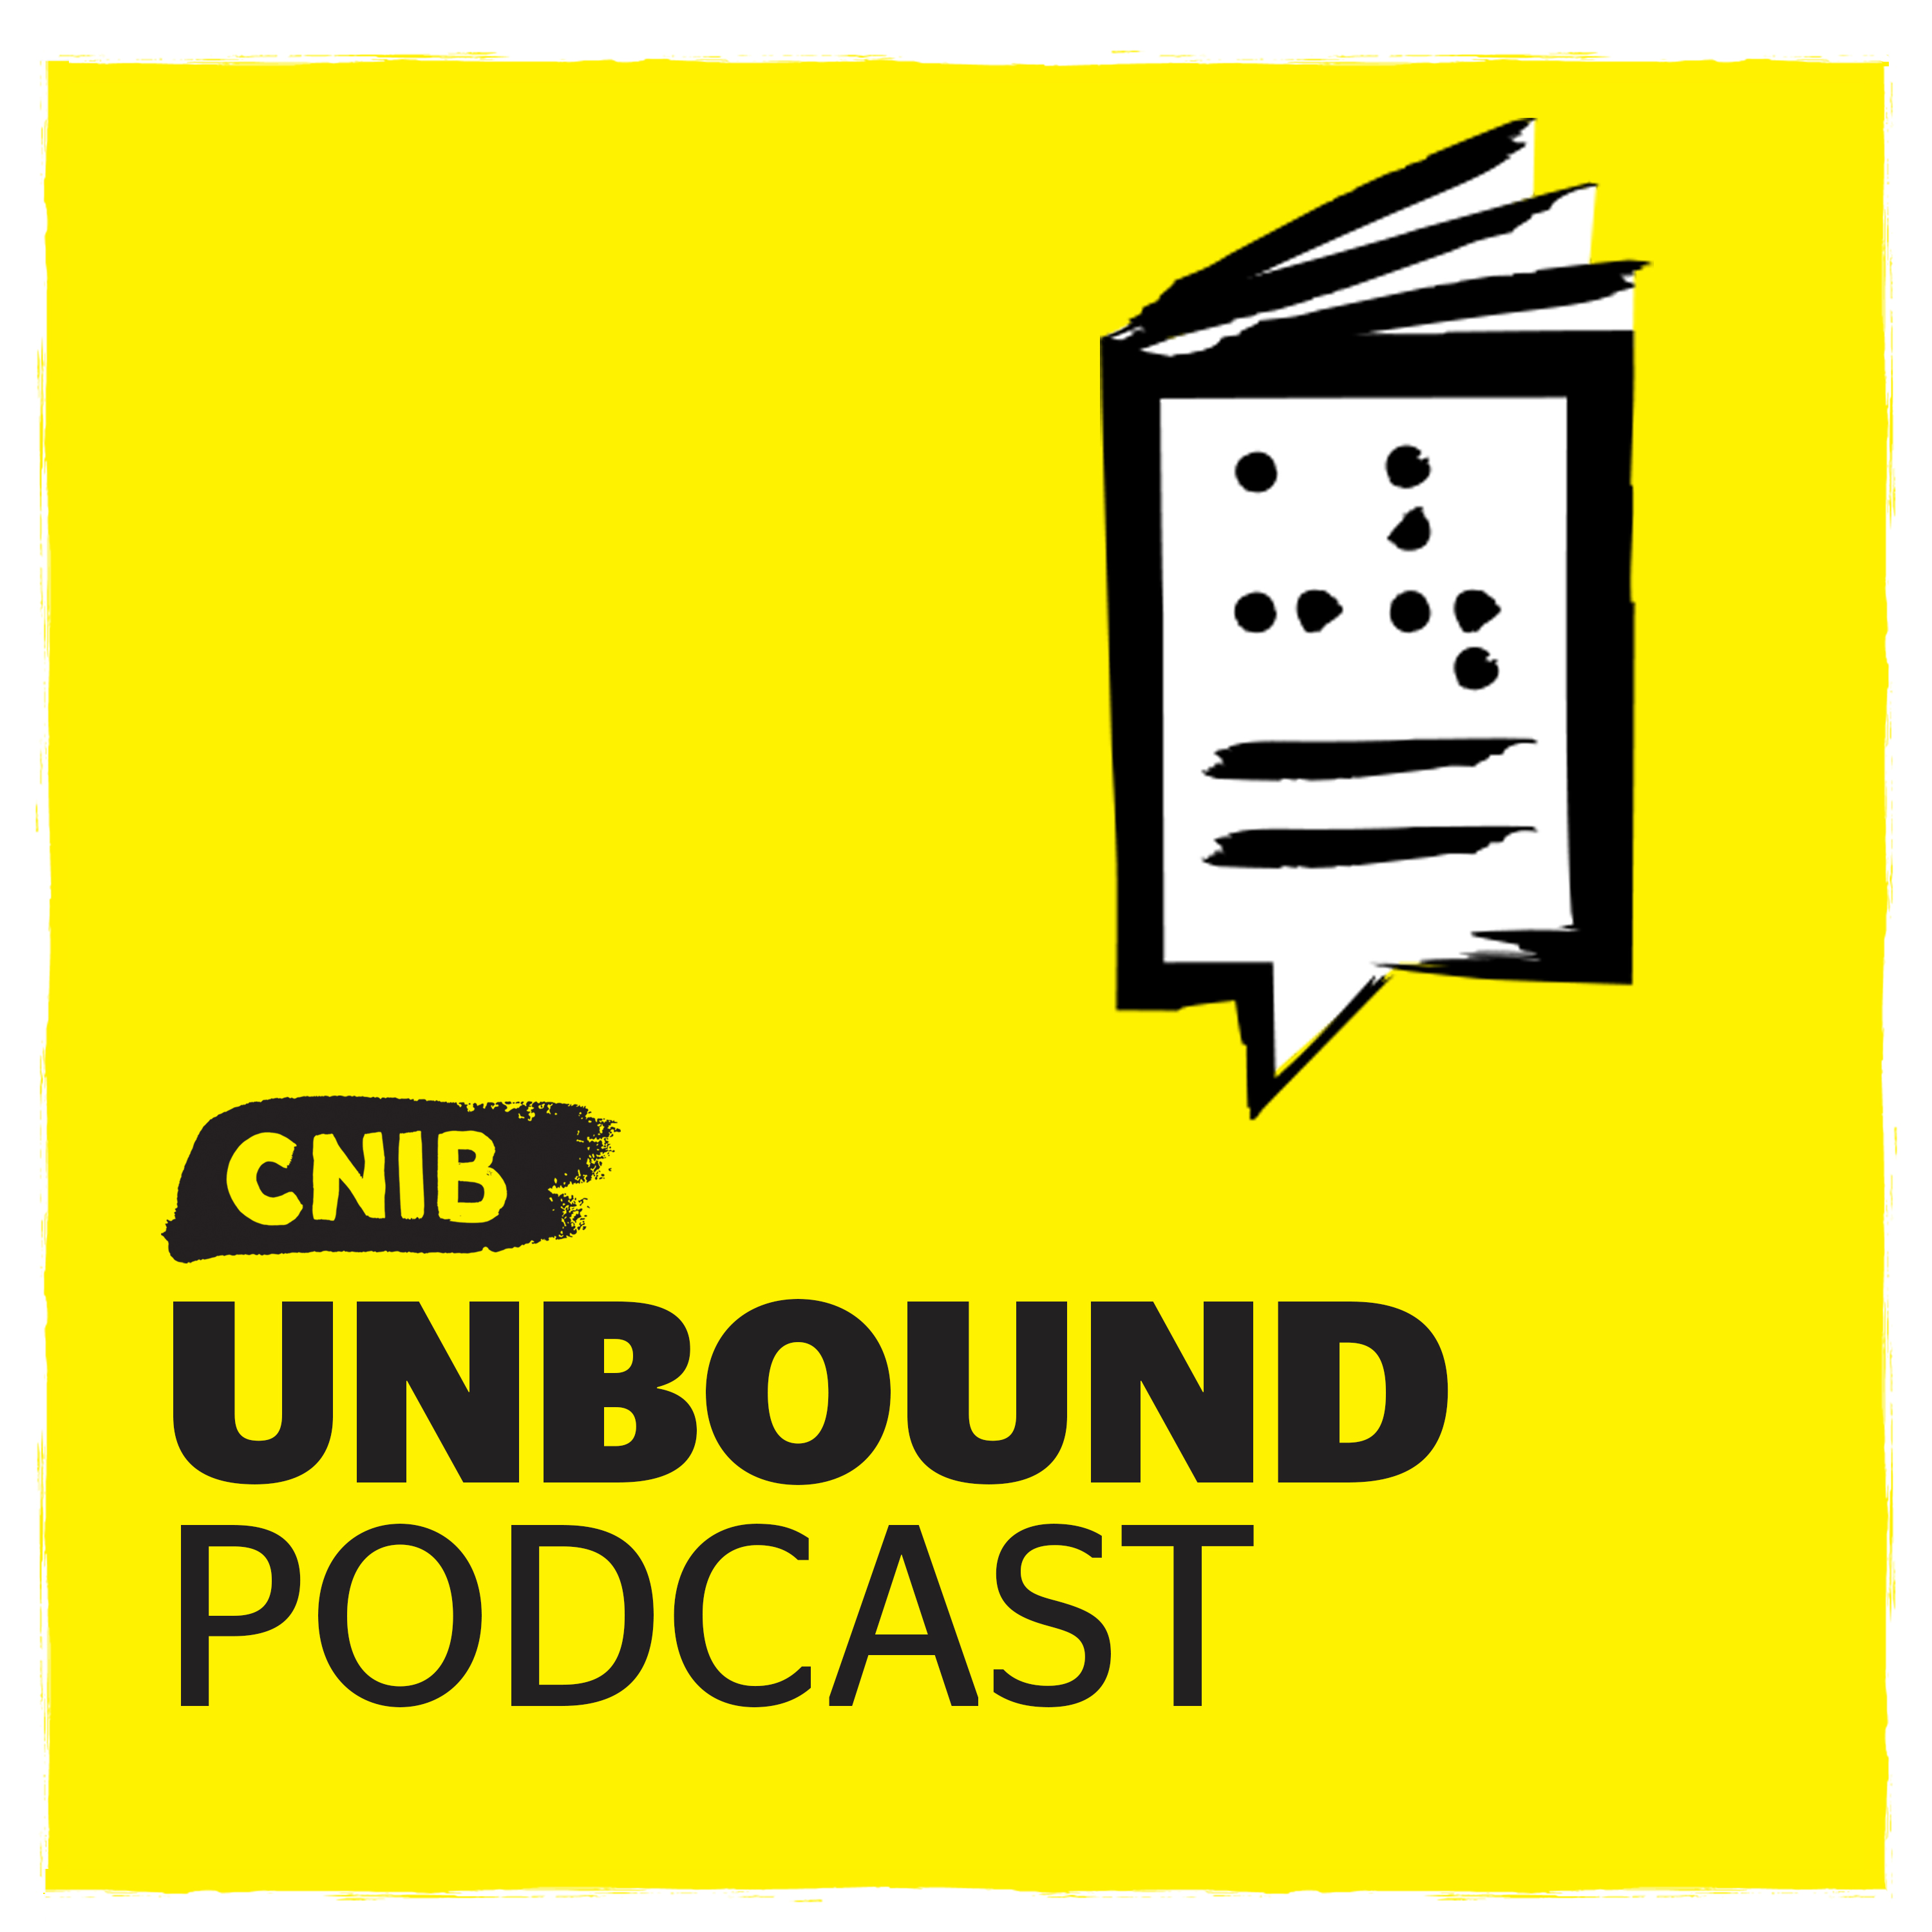 """CNIB Unbound"" with braille book/speech bubble icon on yellow."